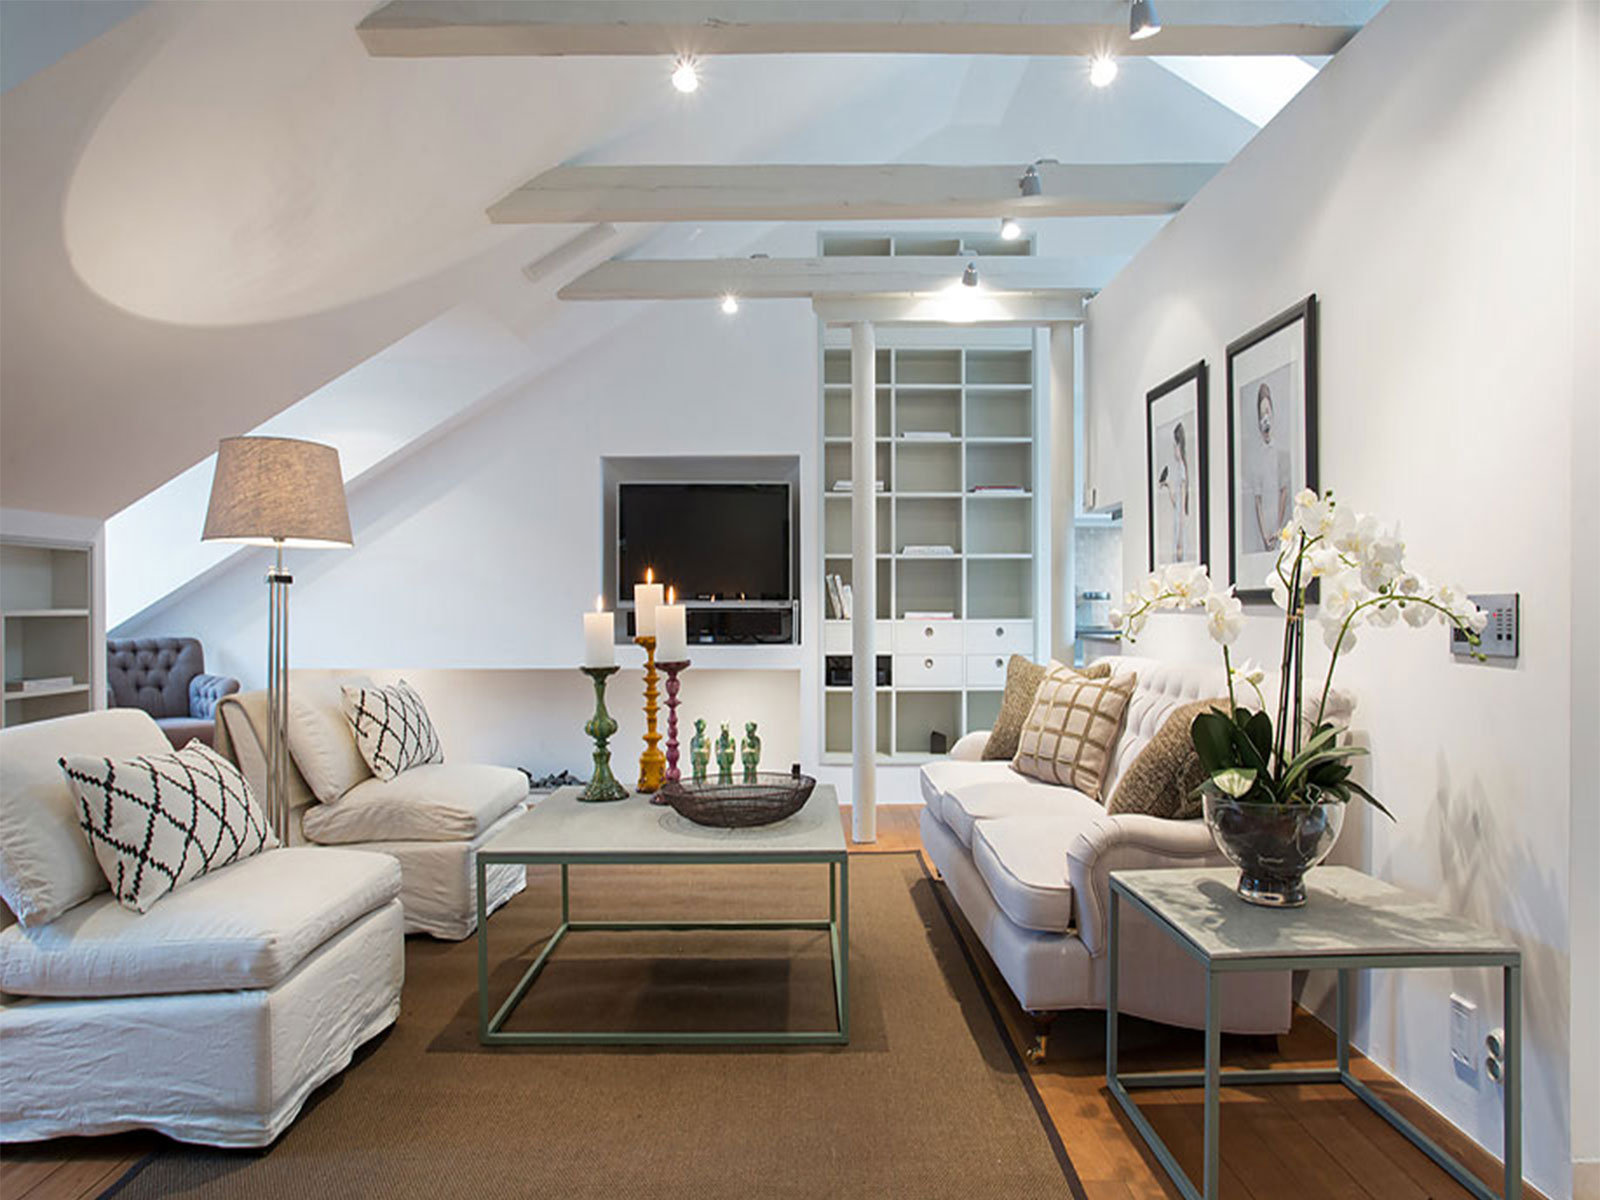 Featured Image of Artistic Attic Living Room Remodel And Decor